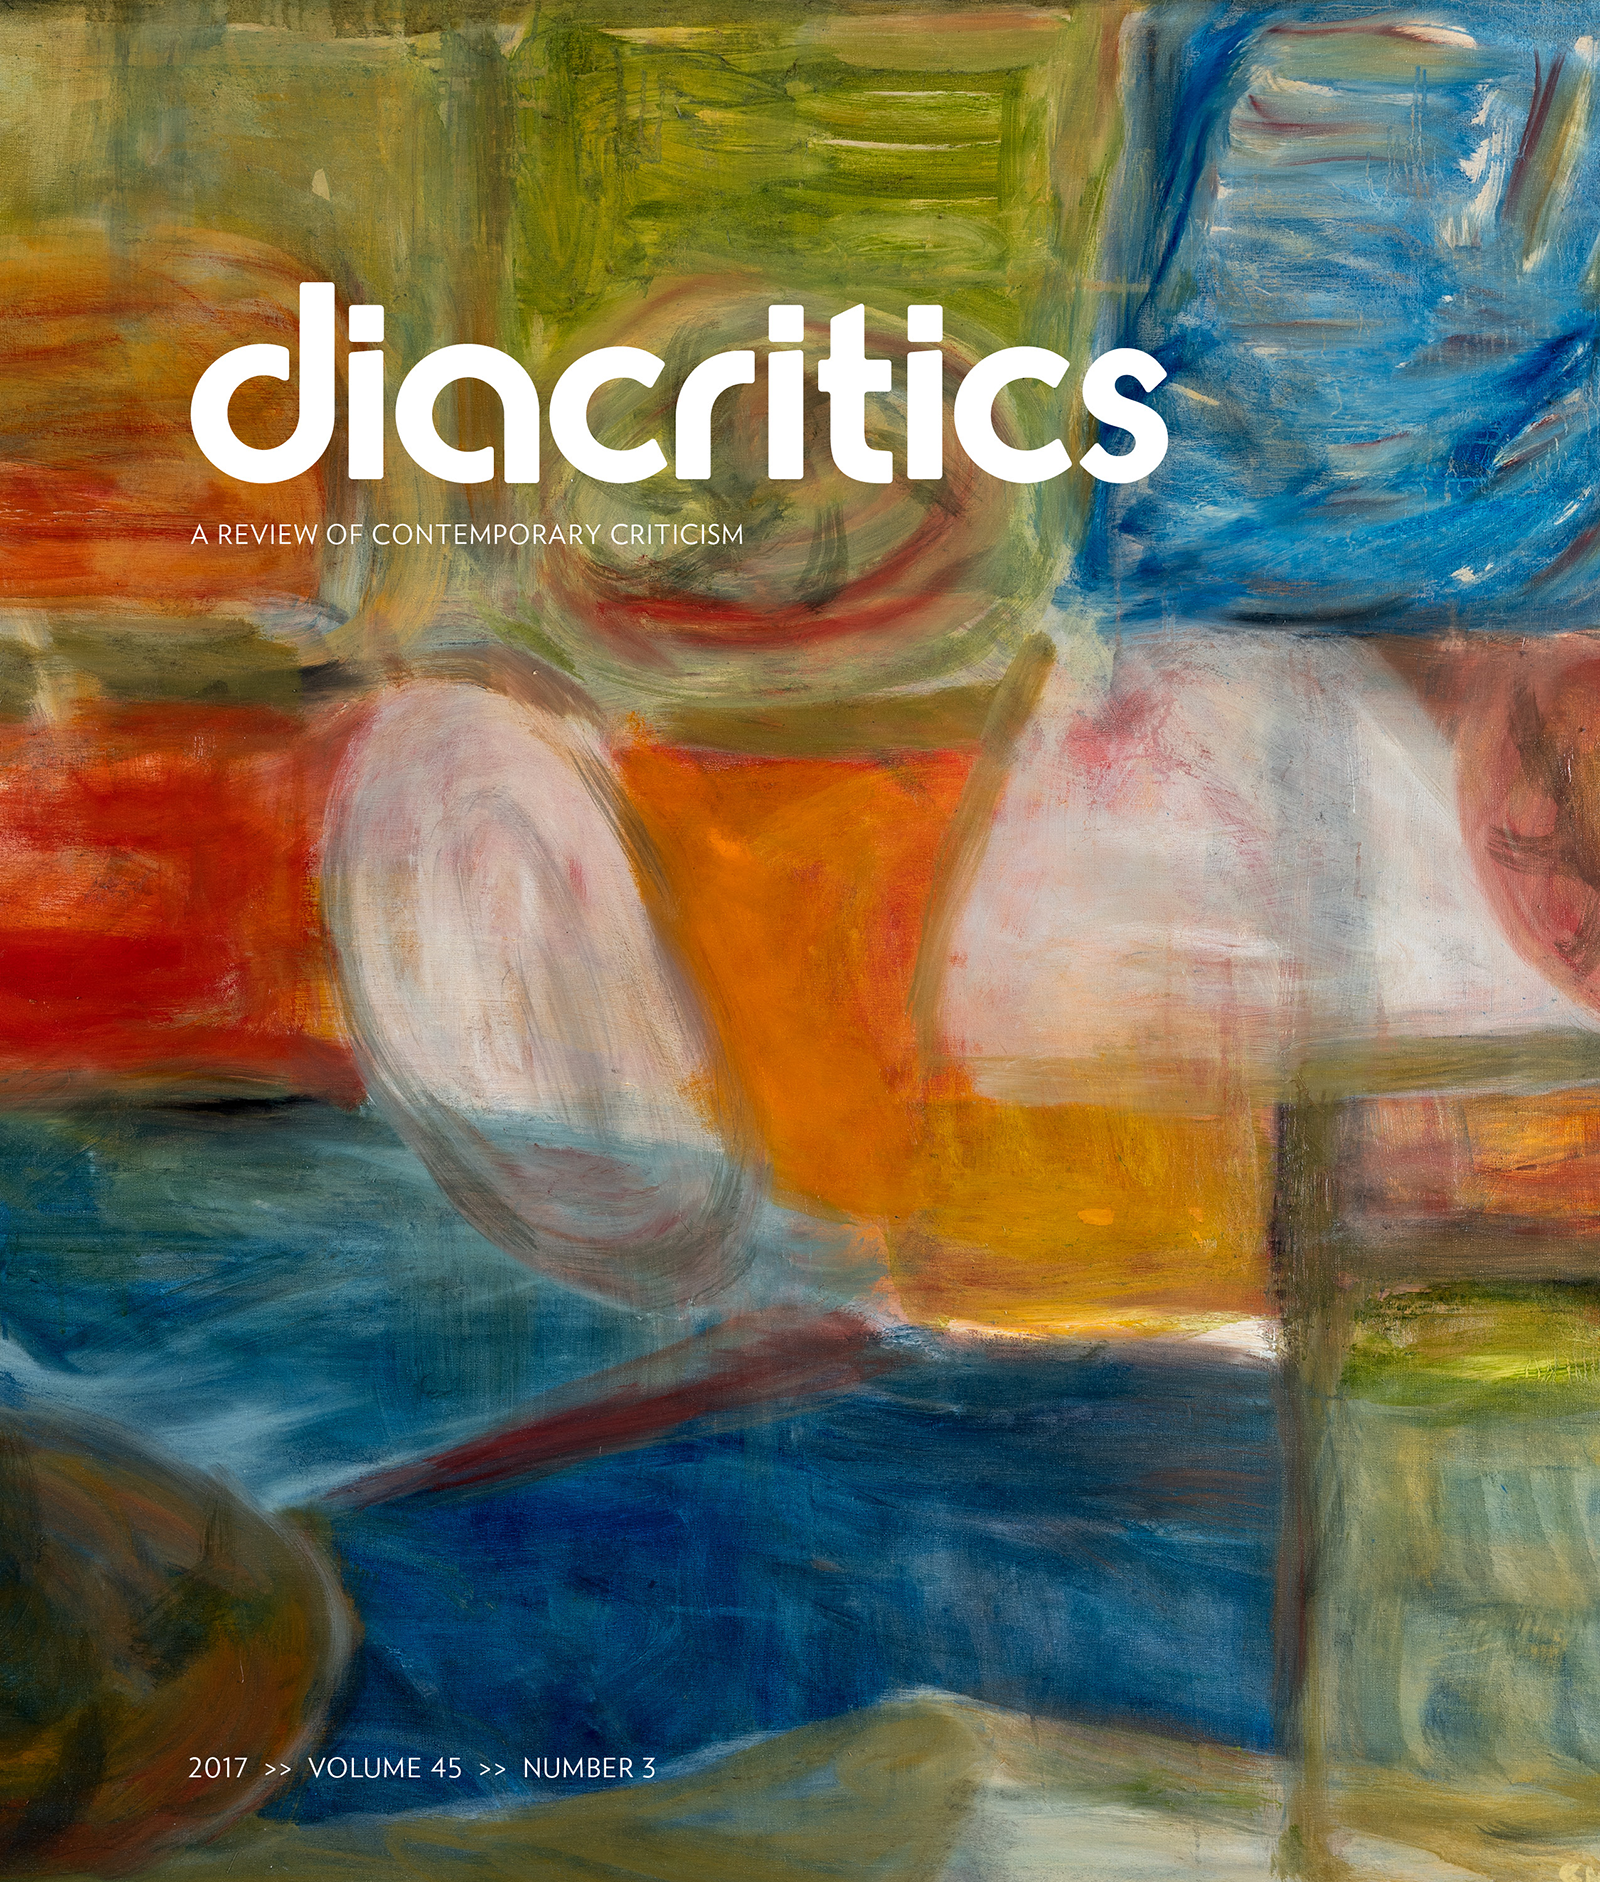 DIACRITICS VOLUME 45 NUMBER 3 2017